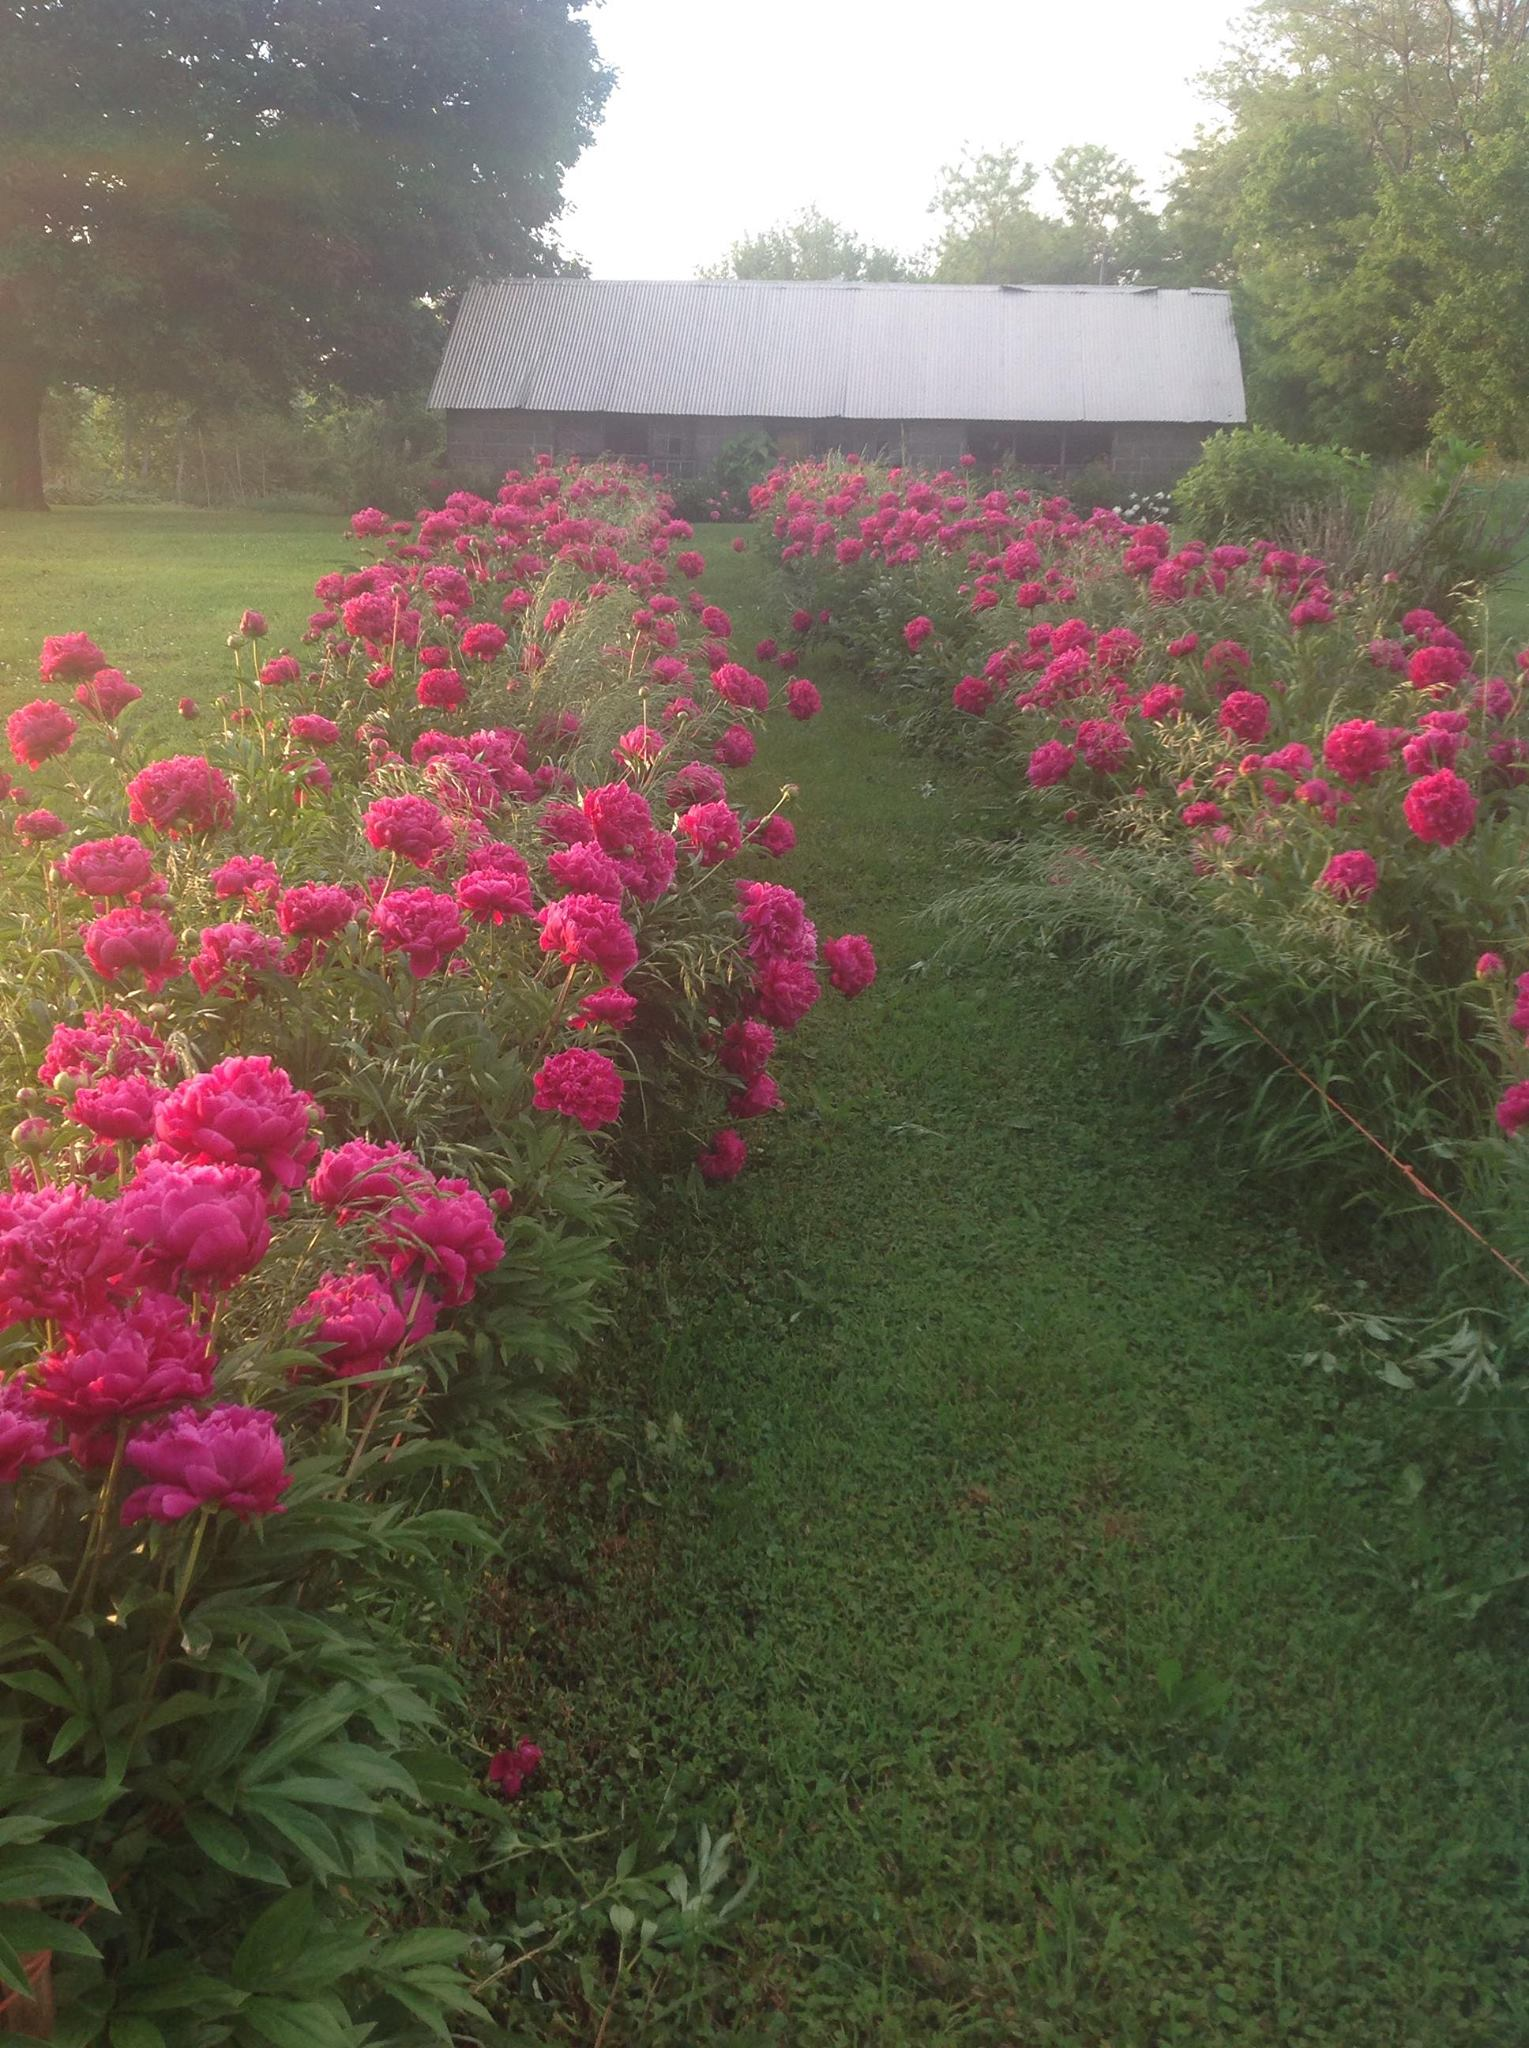 fuchsia peonies in full bloom at the Sharritt farm